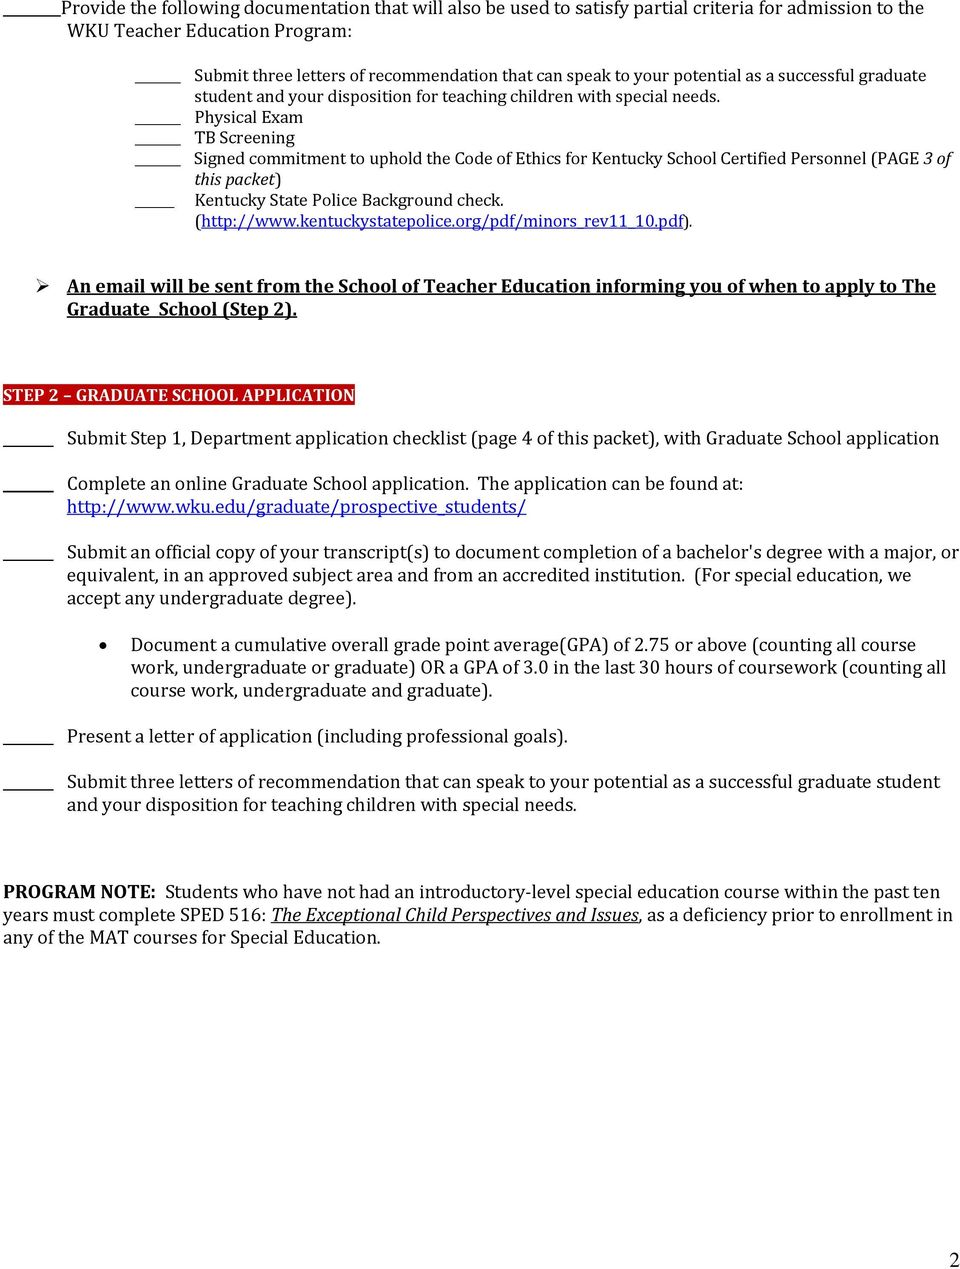 Physical Exam TB Screening Signed commitment to uphold the Code of Ethics for Kentucky School Certified Personnel (PAGE 3 of this packet) Kentucky State Police Background check. (http://www.